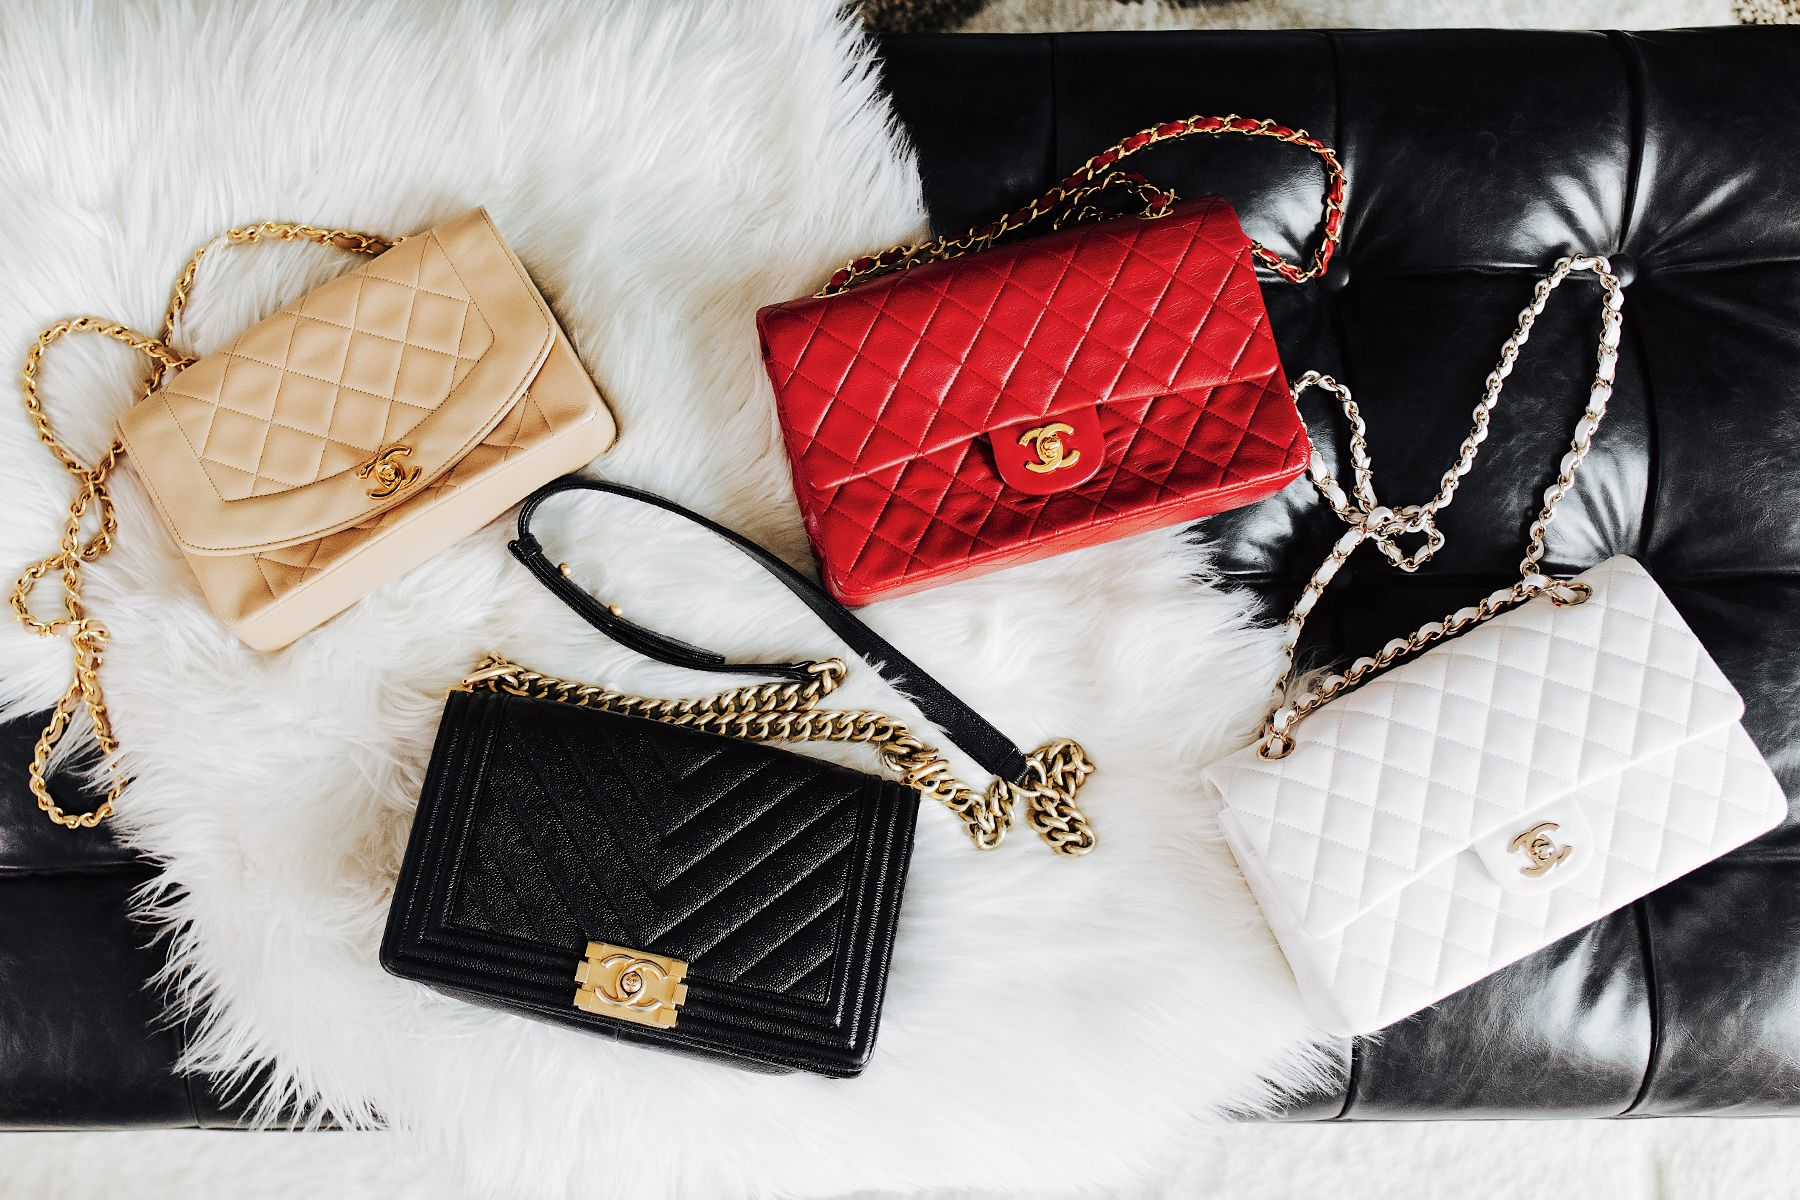 The Designer Bag We Re All Buying Secondhand Out Of Choice